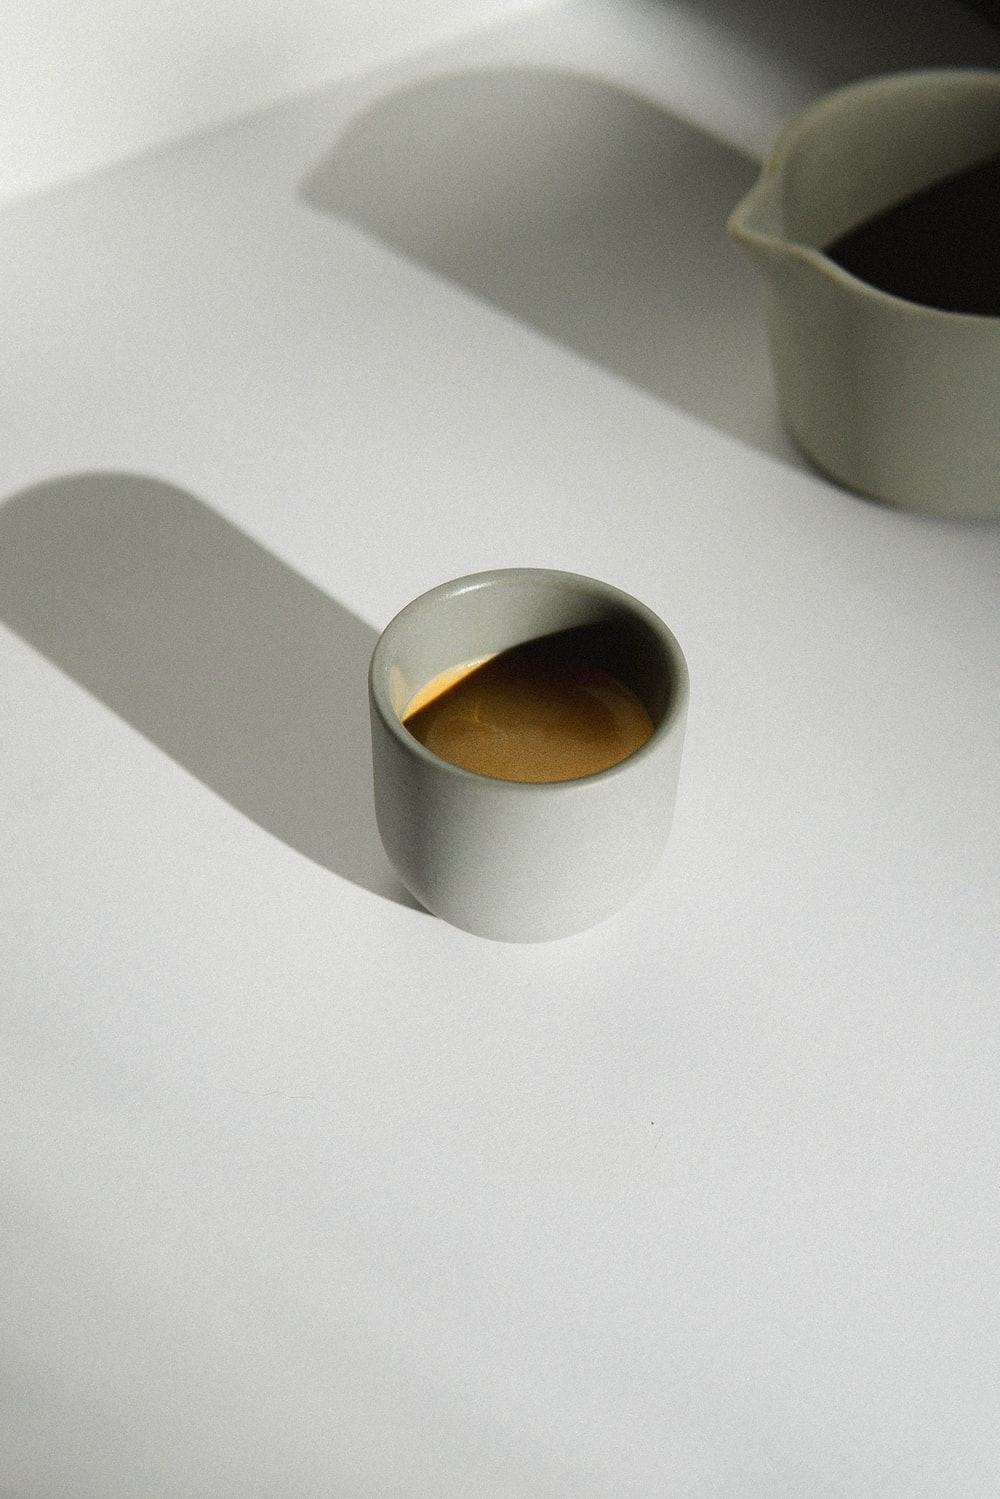 white ceramic mug with brown liquid